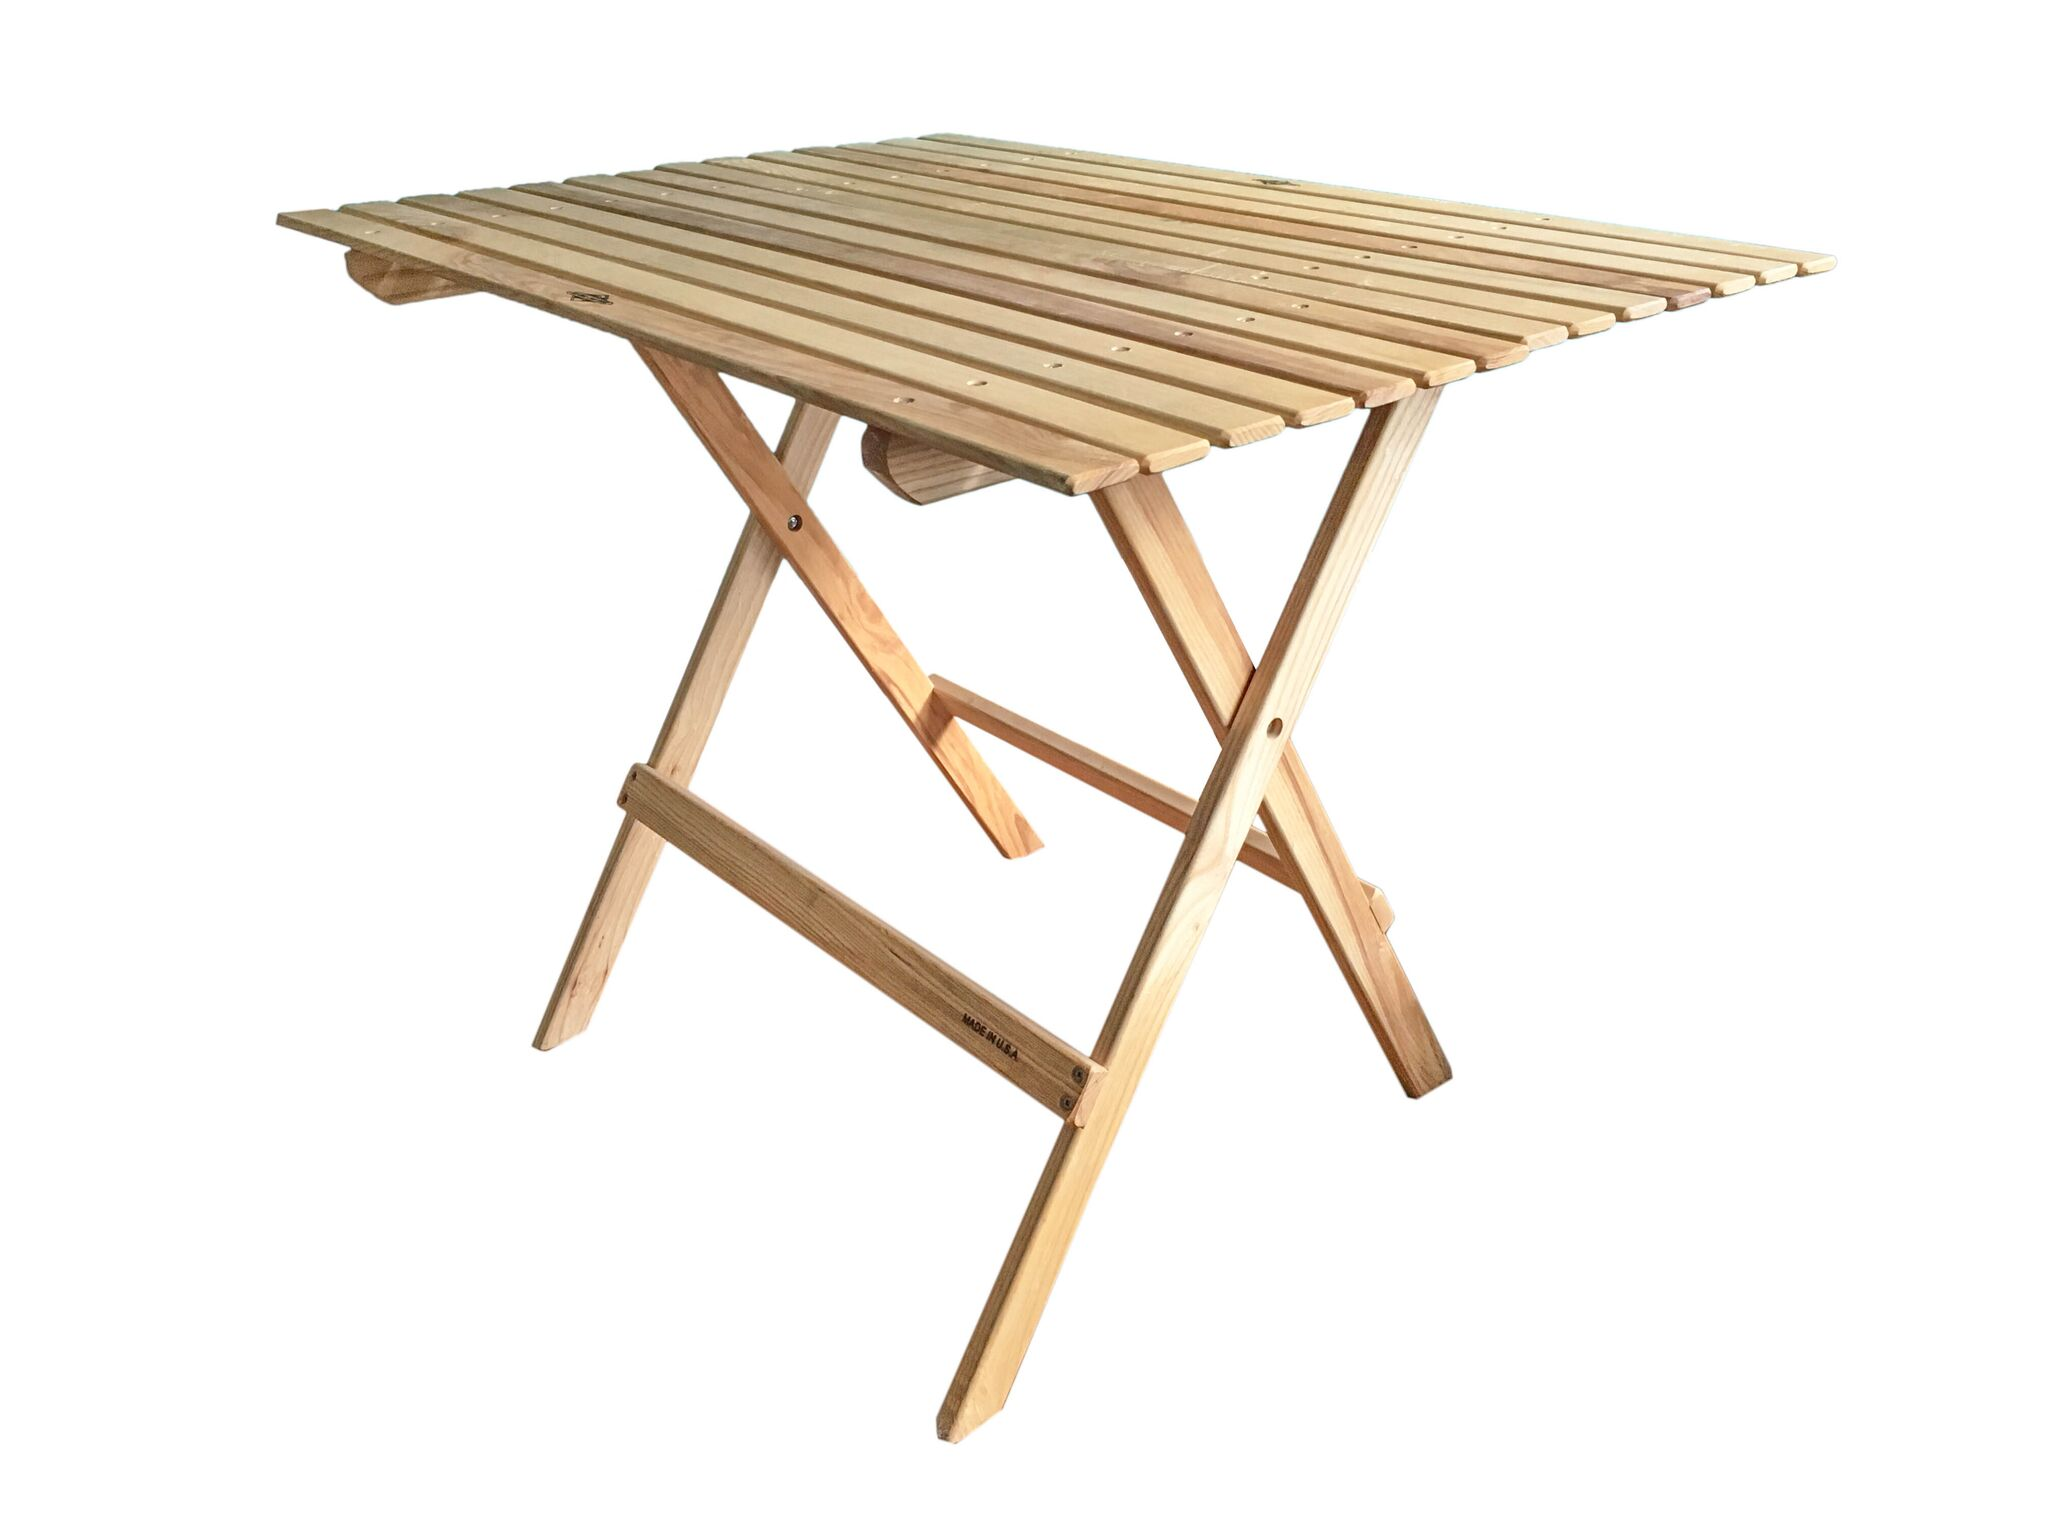 The Pisgah Forest Table by Blue Ridge Chair